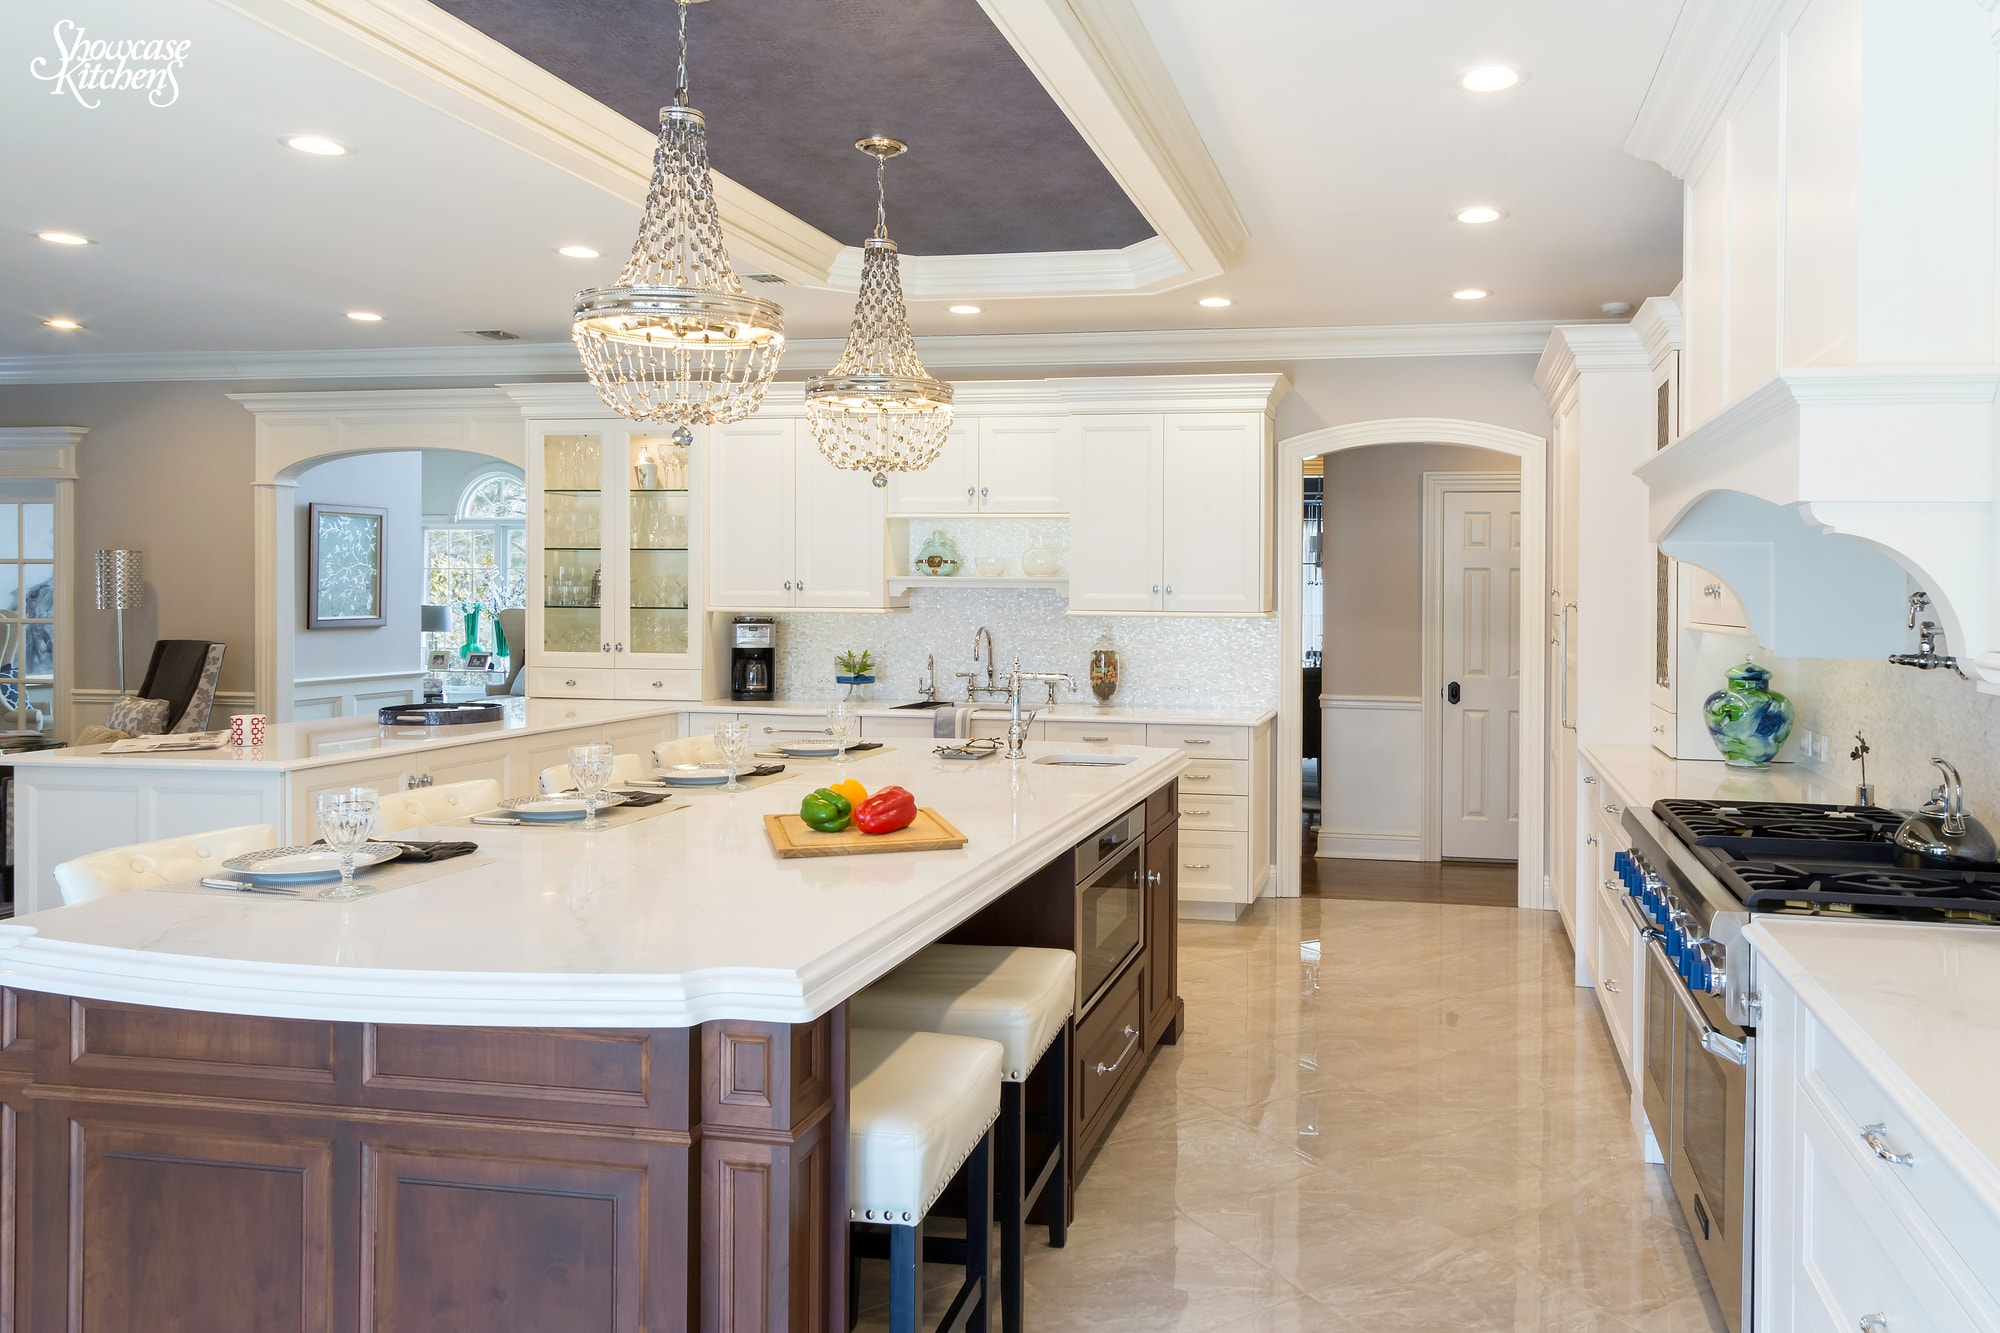 Transitional style kitchen with counter stools and chairs at the center island